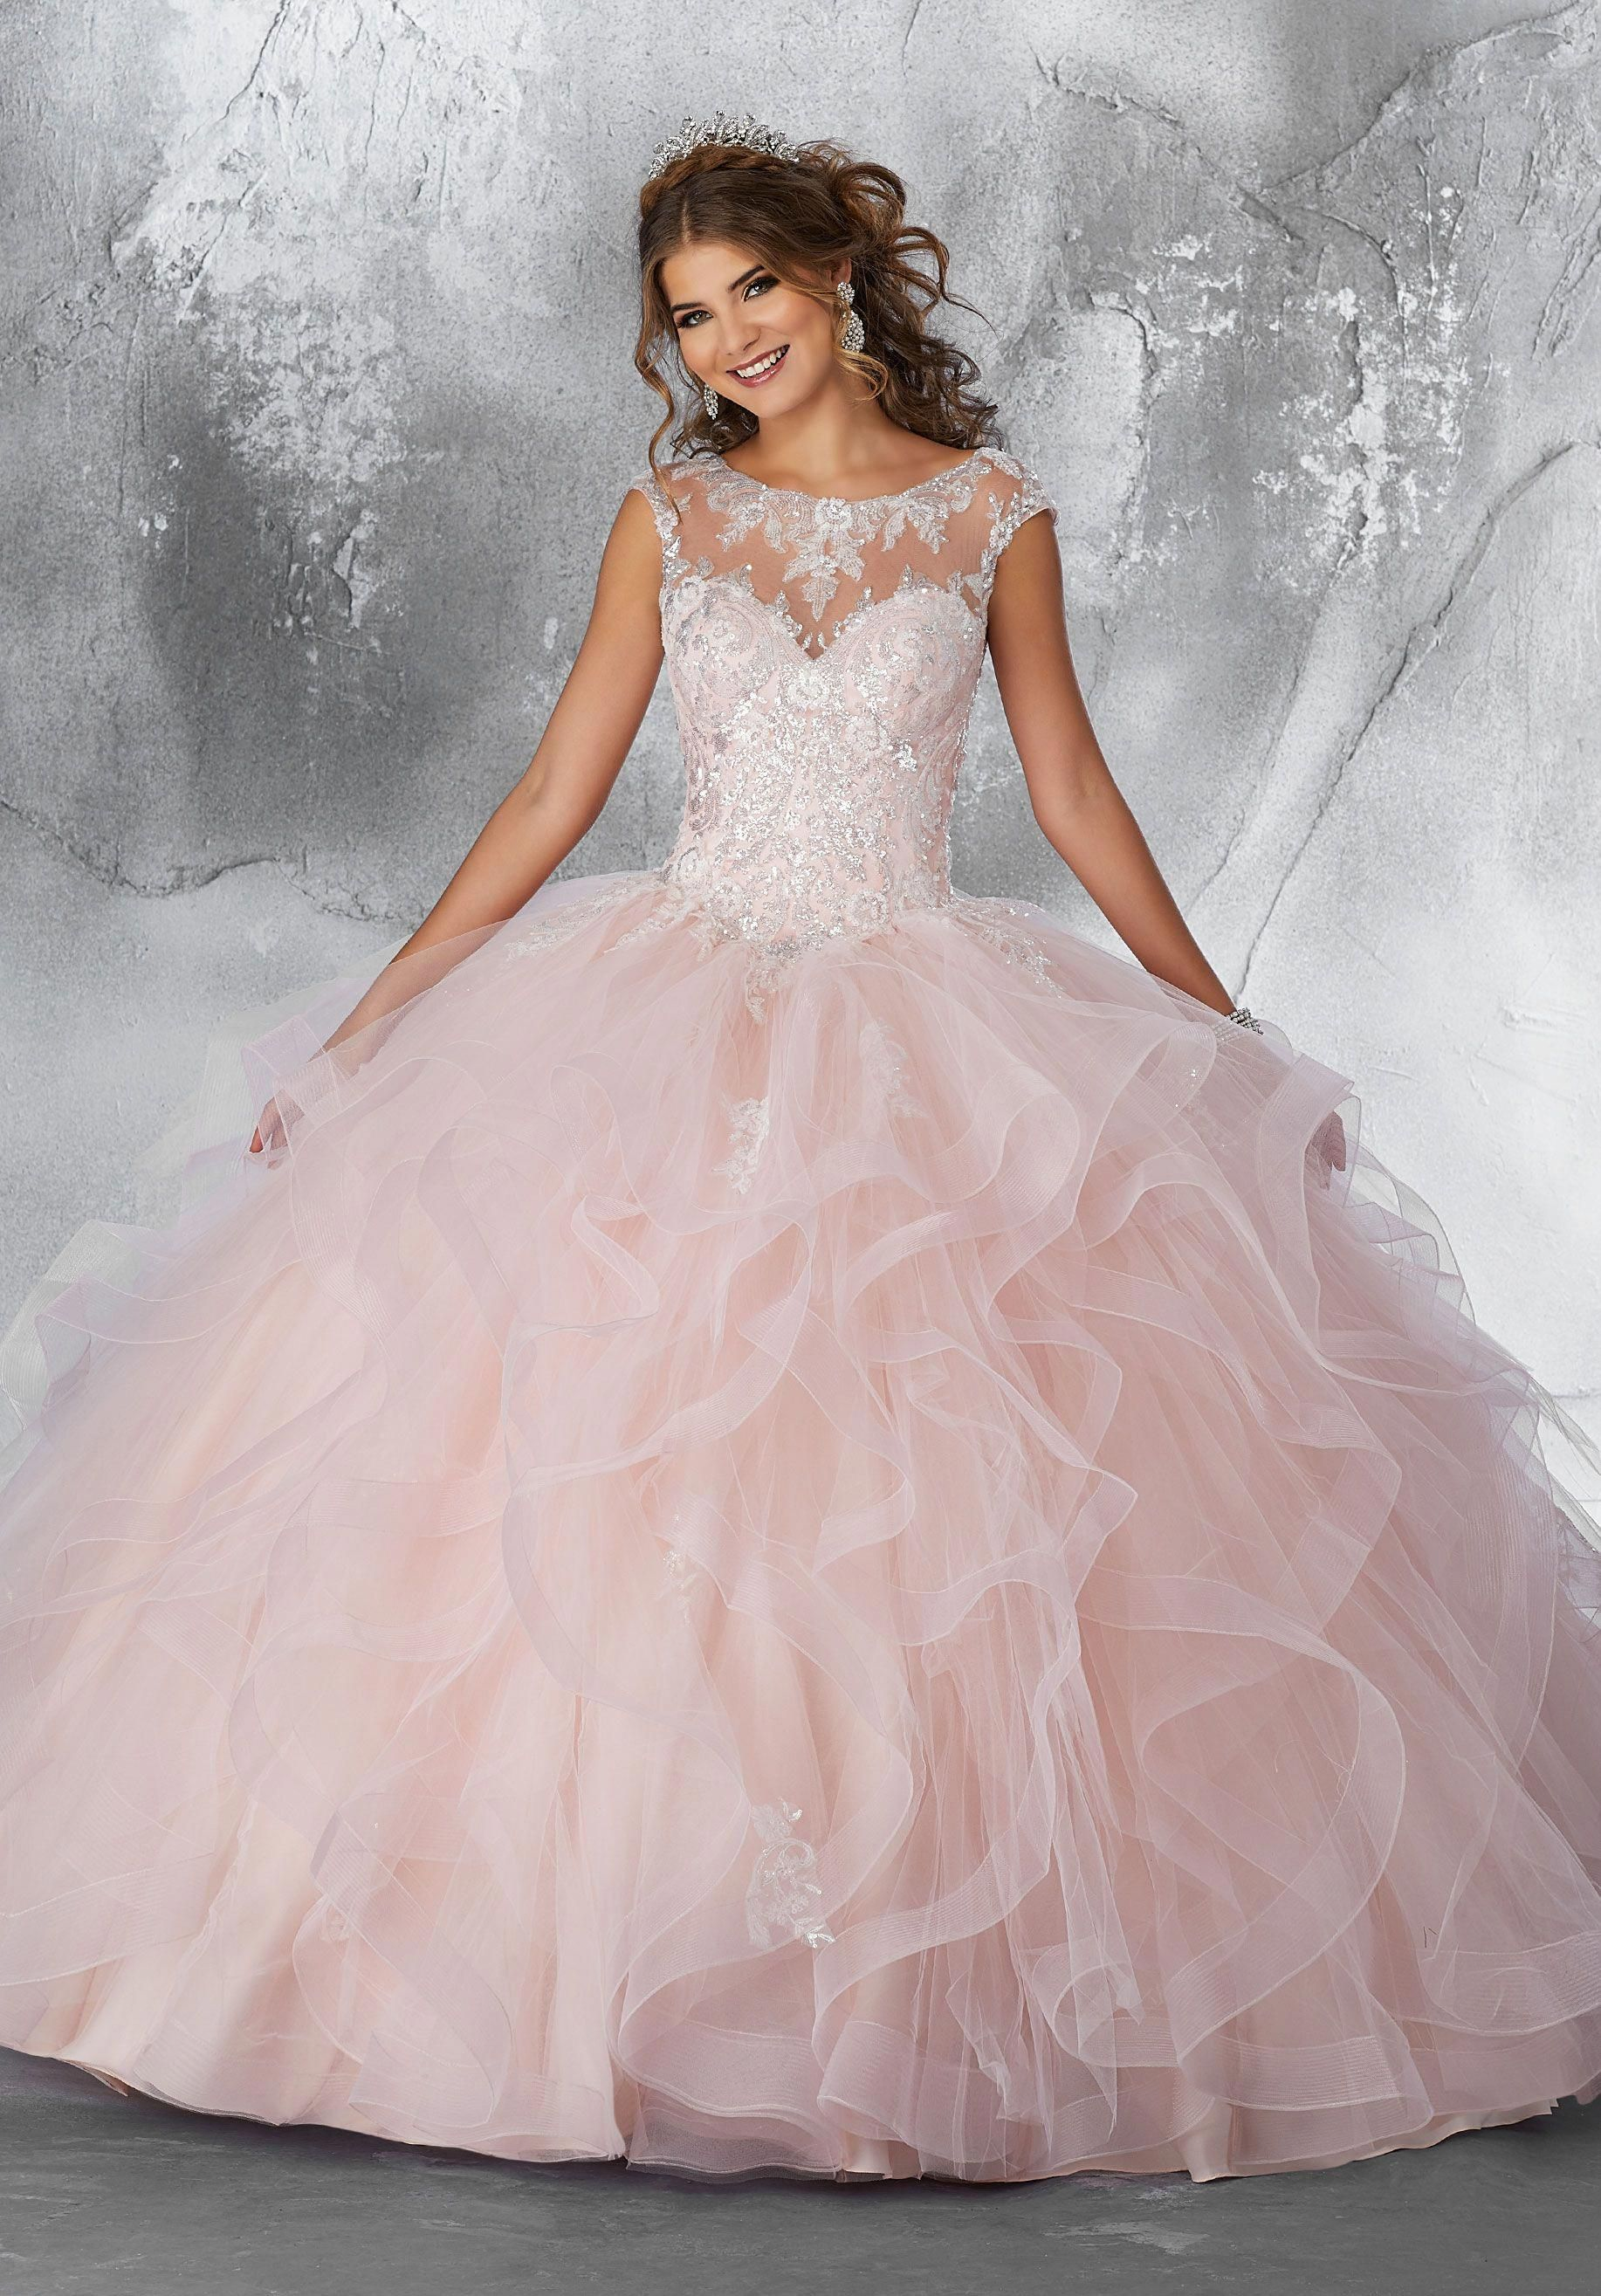 Ball gown wedding dress with bling  Patterned Sequins on a Flounced Tulle Ballgown  Style